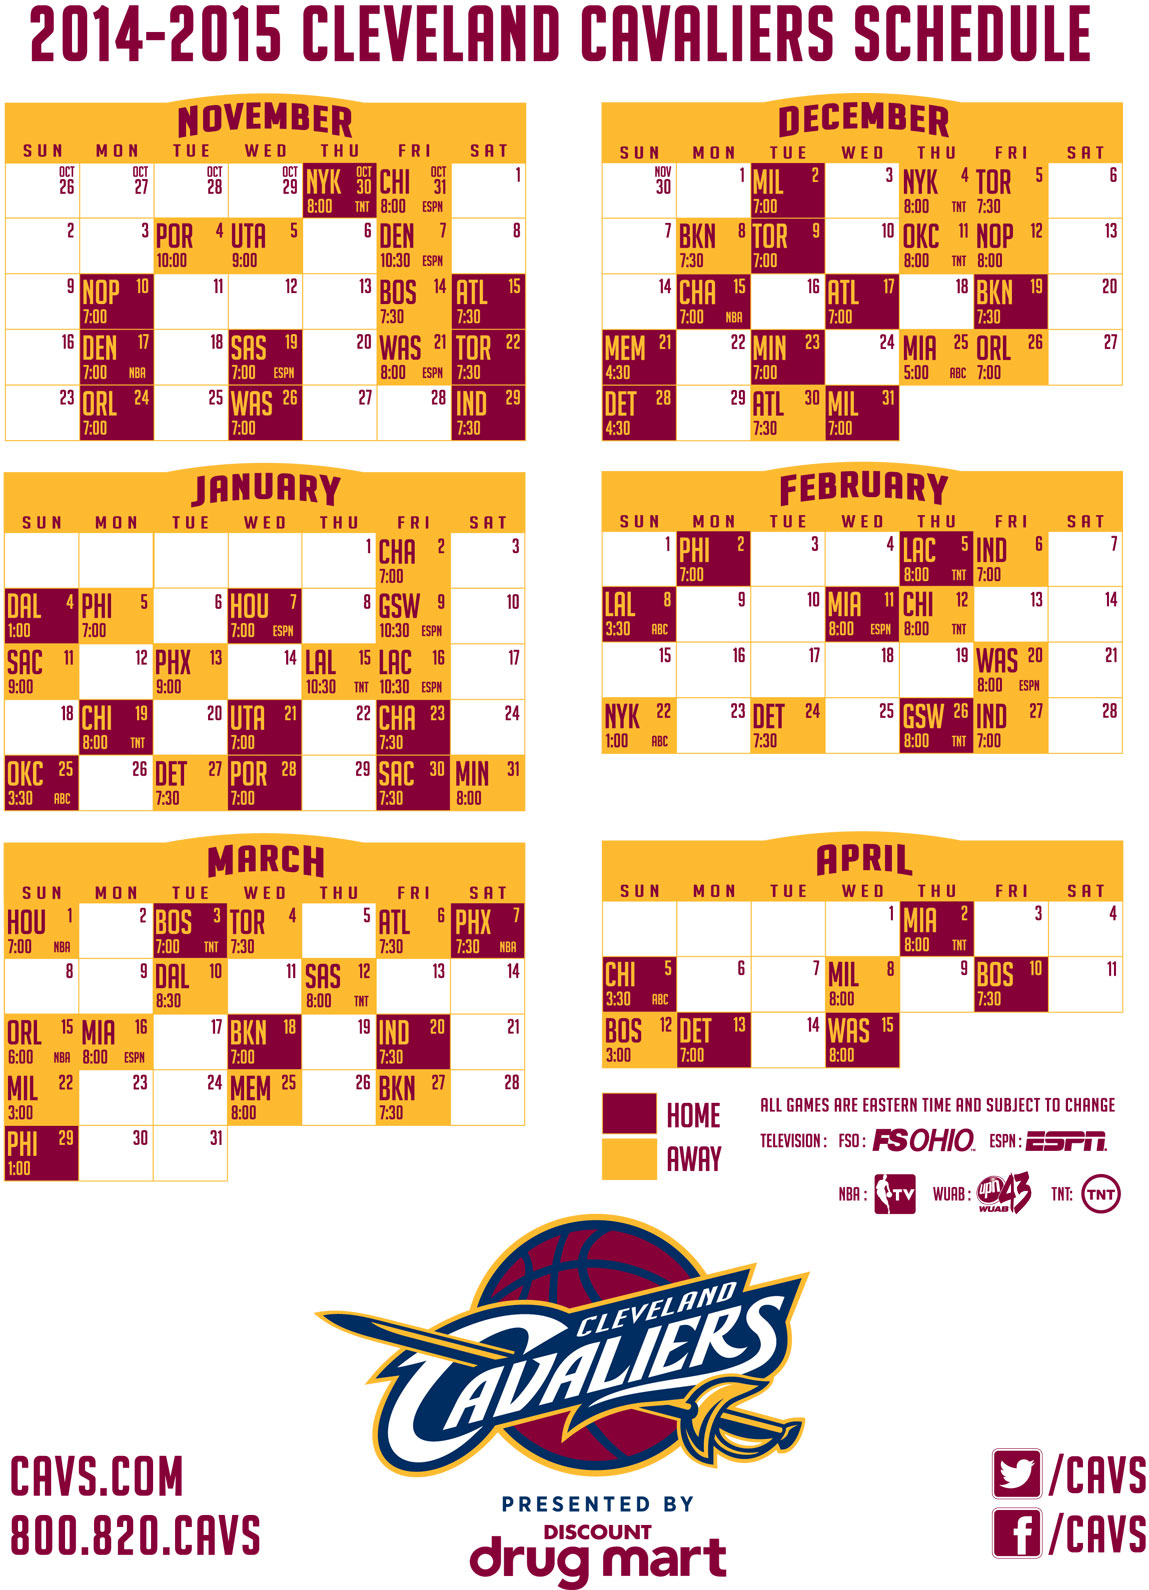 graphic regarding Cavs Schedule Printable referred to as 2014-15 Cleveland Cavaliers Program - WEOL Radio 930 AM